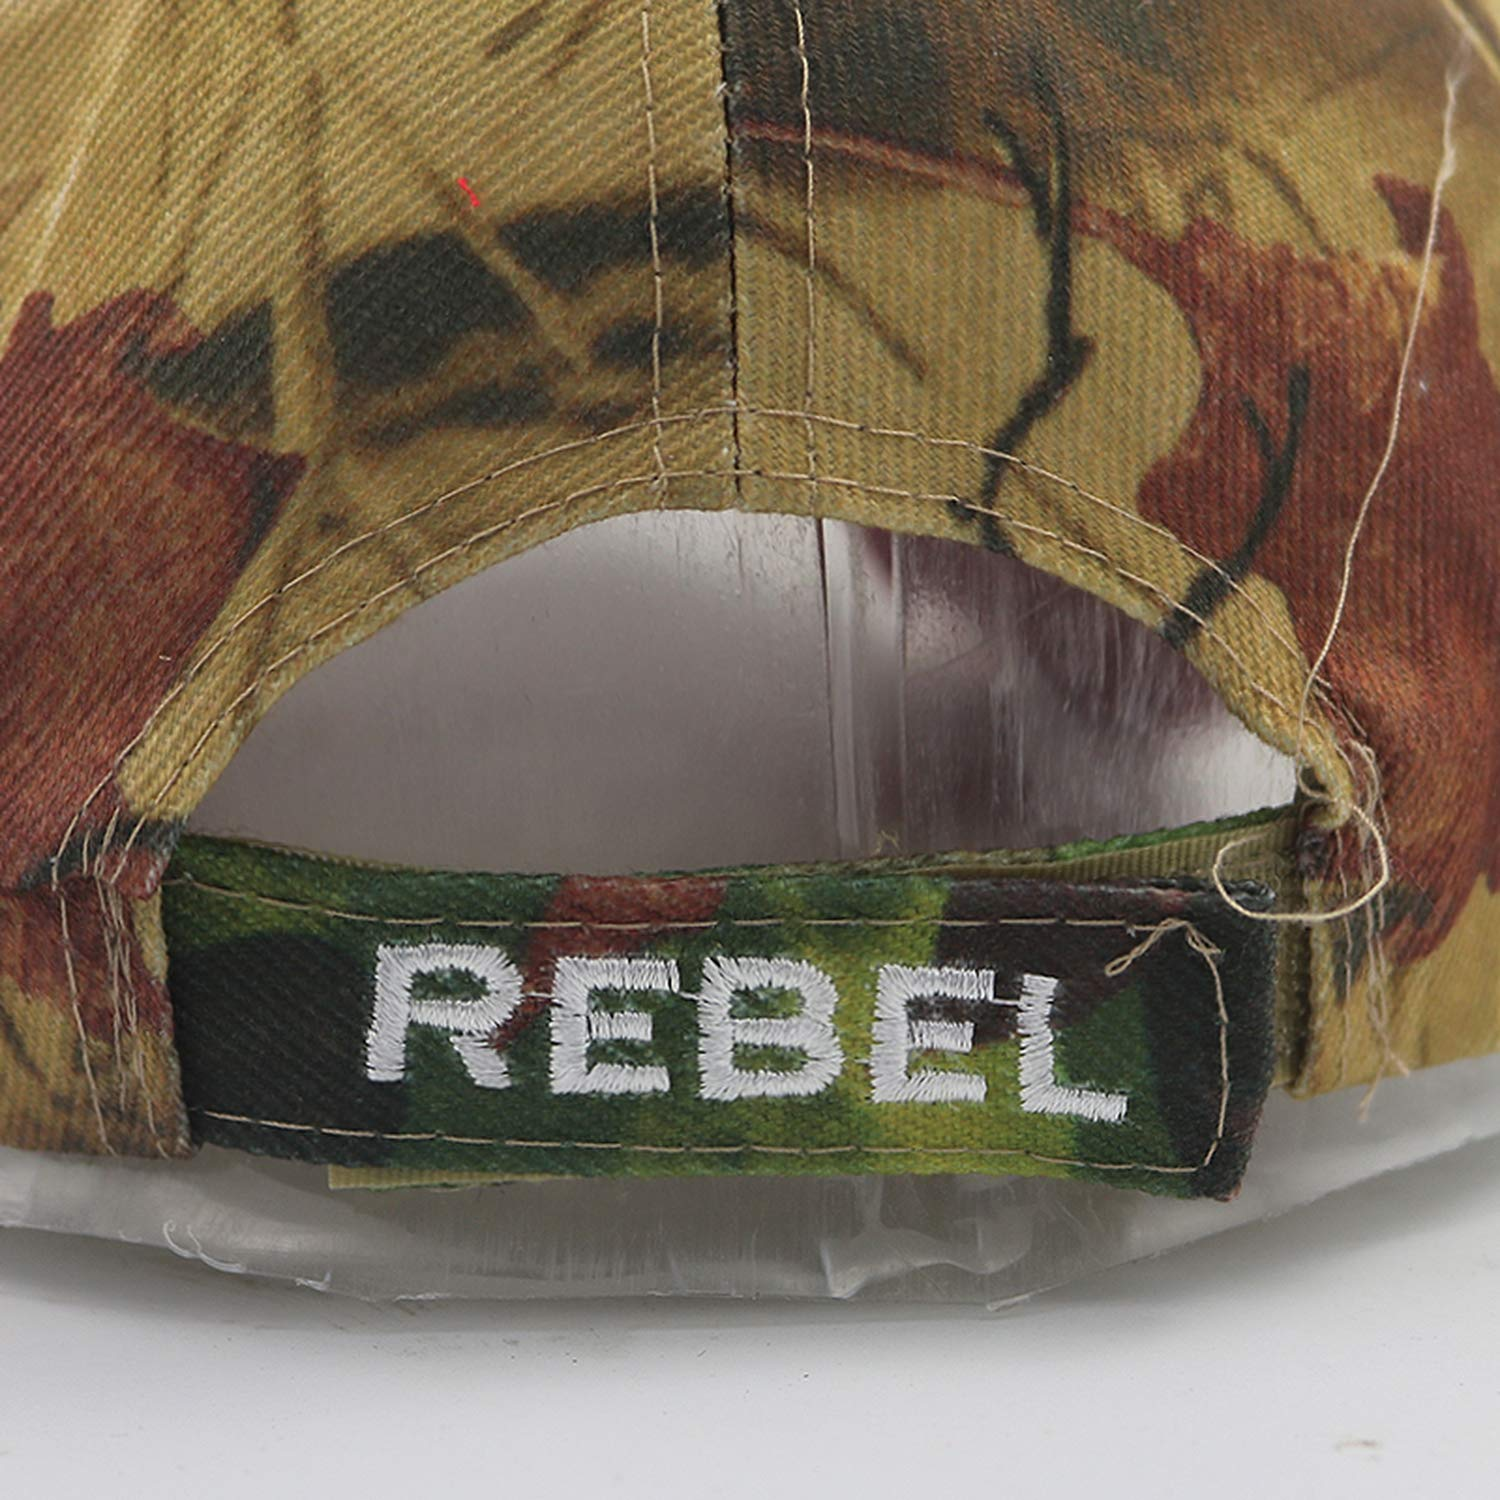 Rebel 3D Embroidery Baseball Caps Hats for Men Motorcycle F1 Moto GP Cap vrfortysix Gorras Casquette Bone caps Army Green at Amazon Womens Clothing store: